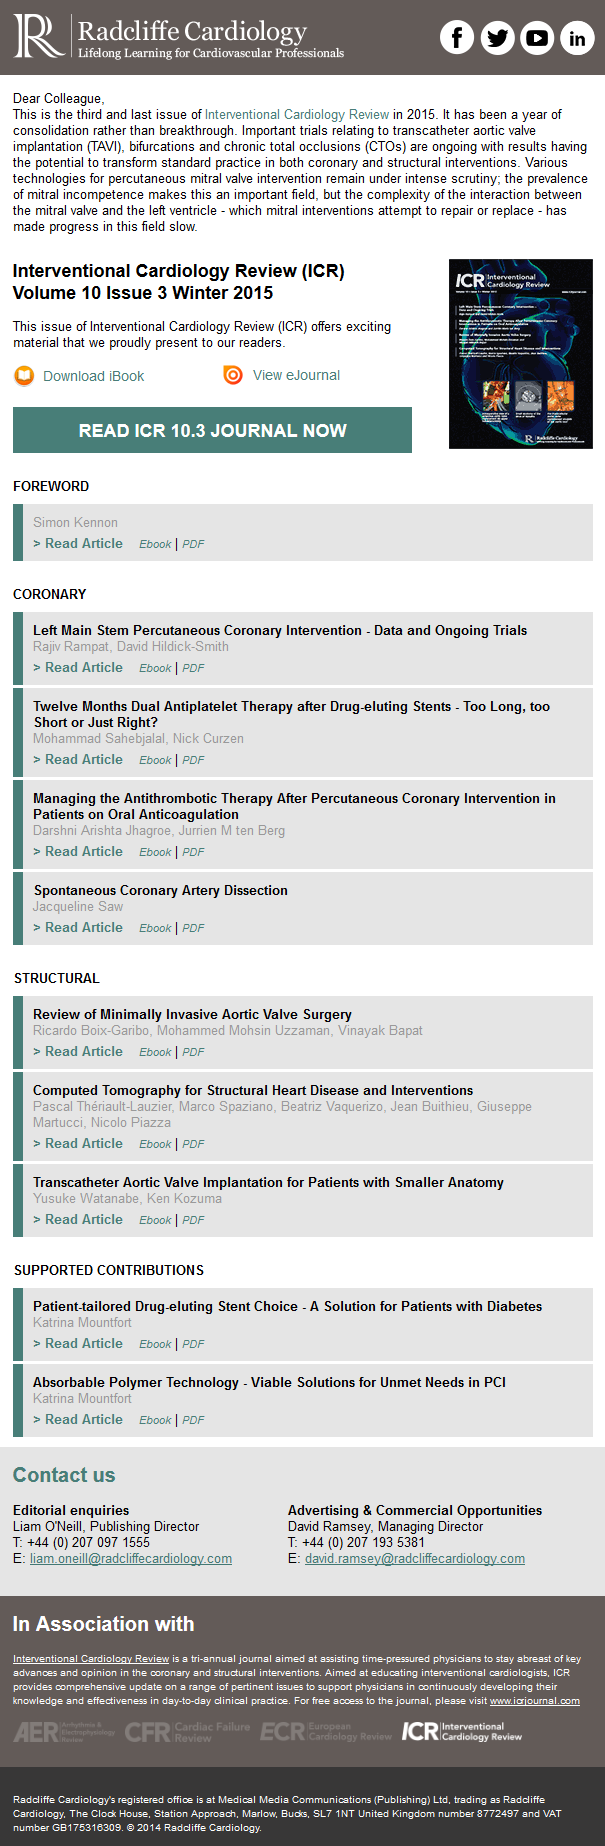 Interventional Cardiology Review - Volume 10 Issue 3